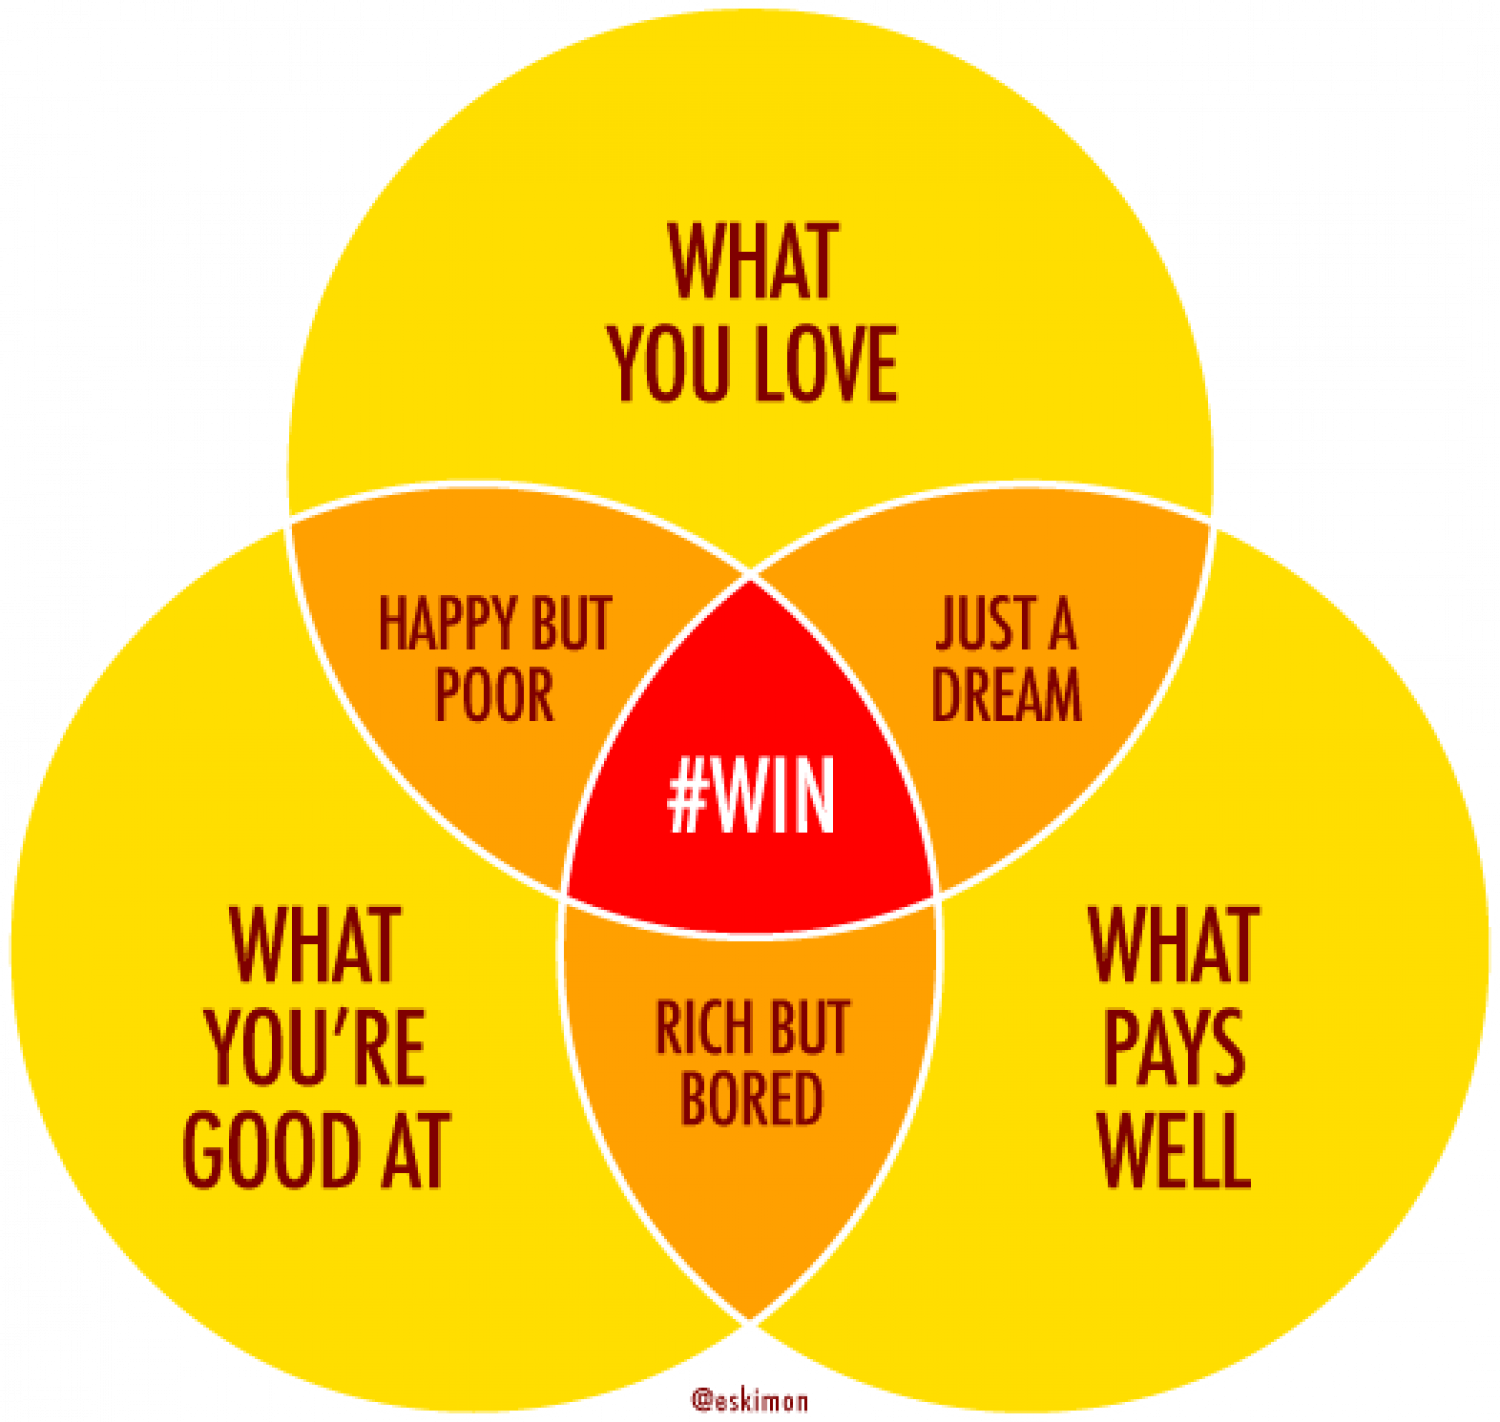 Career #Win Infographic